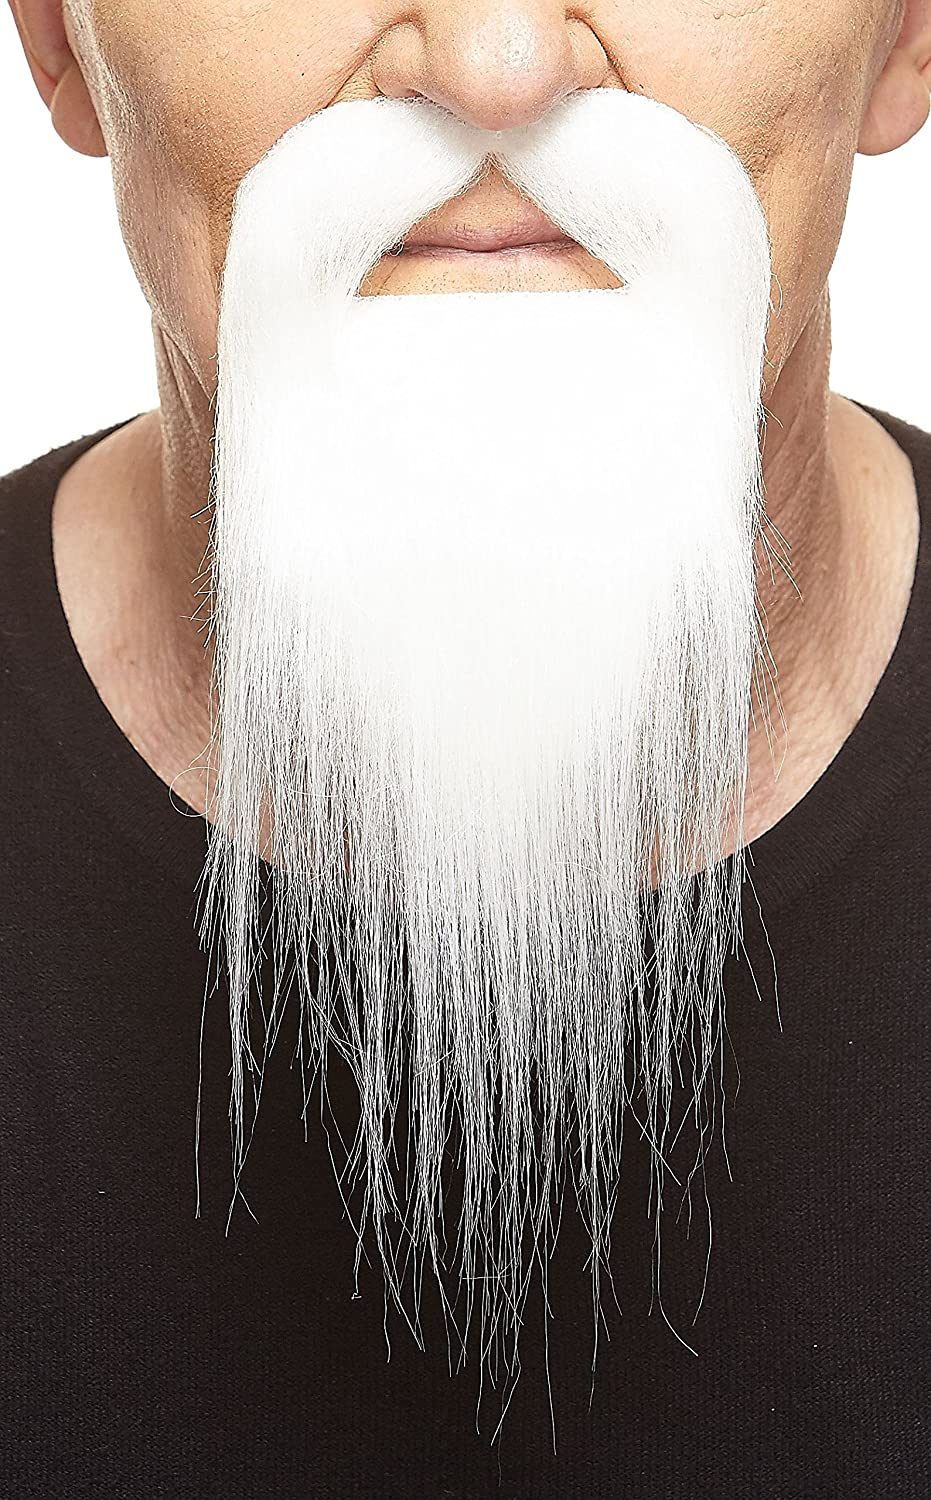 Novelty Ducktail Fake Beard Mustaches Self Adhesive False Facial Hair Costume Accessory for Adults